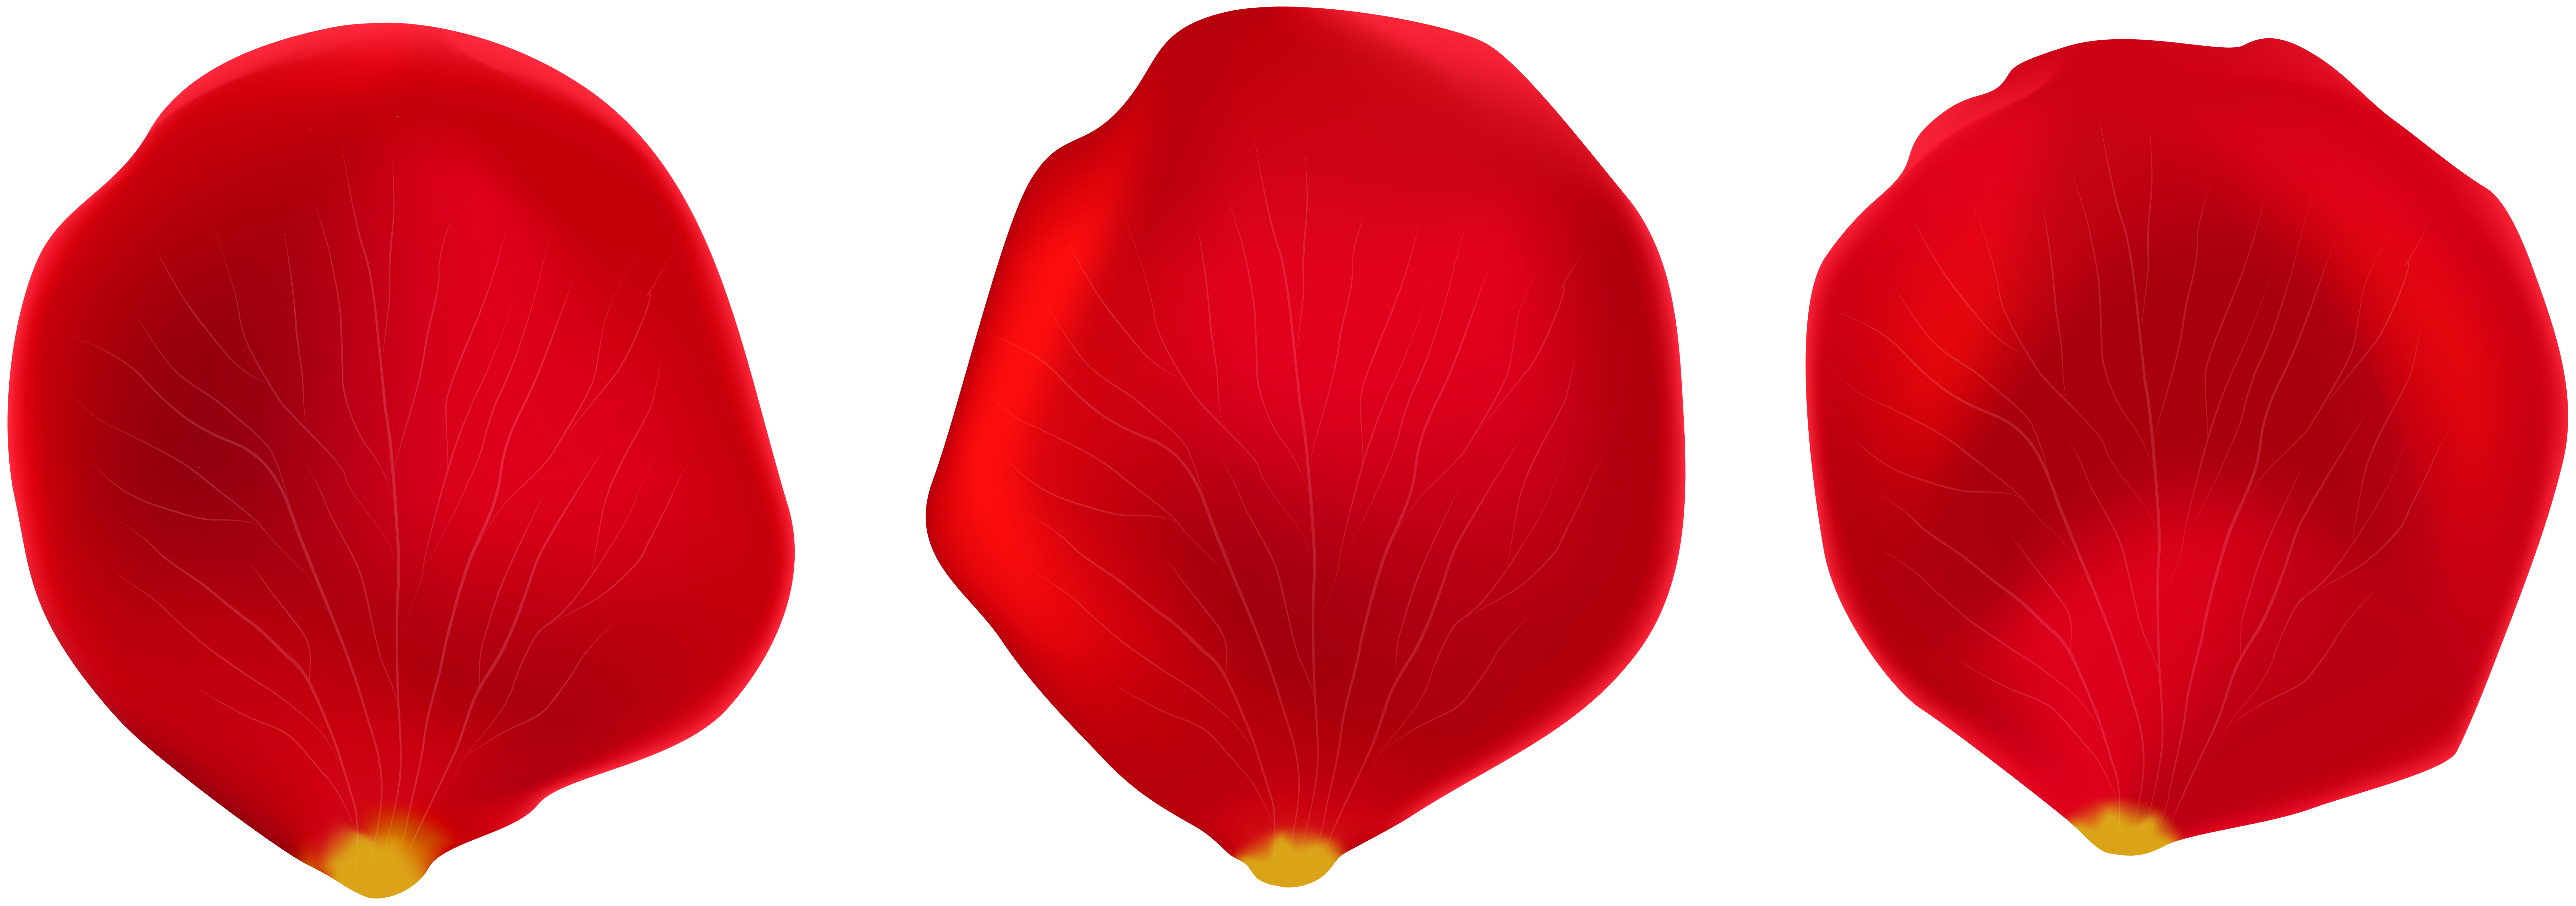 Rose petals clip art clipart images gallery for free.